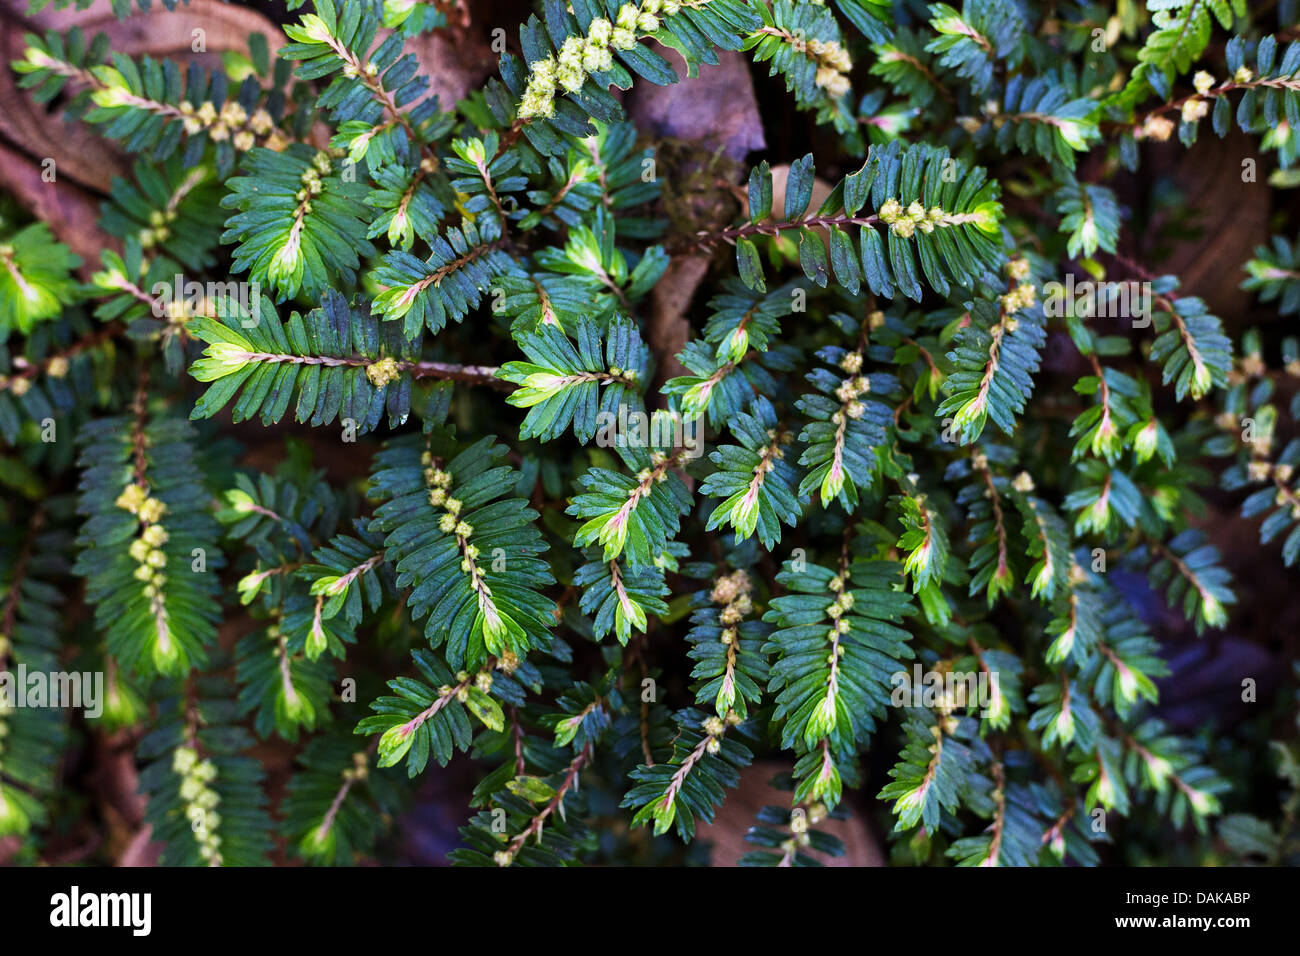 Tiny ferns in rainforest undergrowth, Papua New Guinea Stock Photo